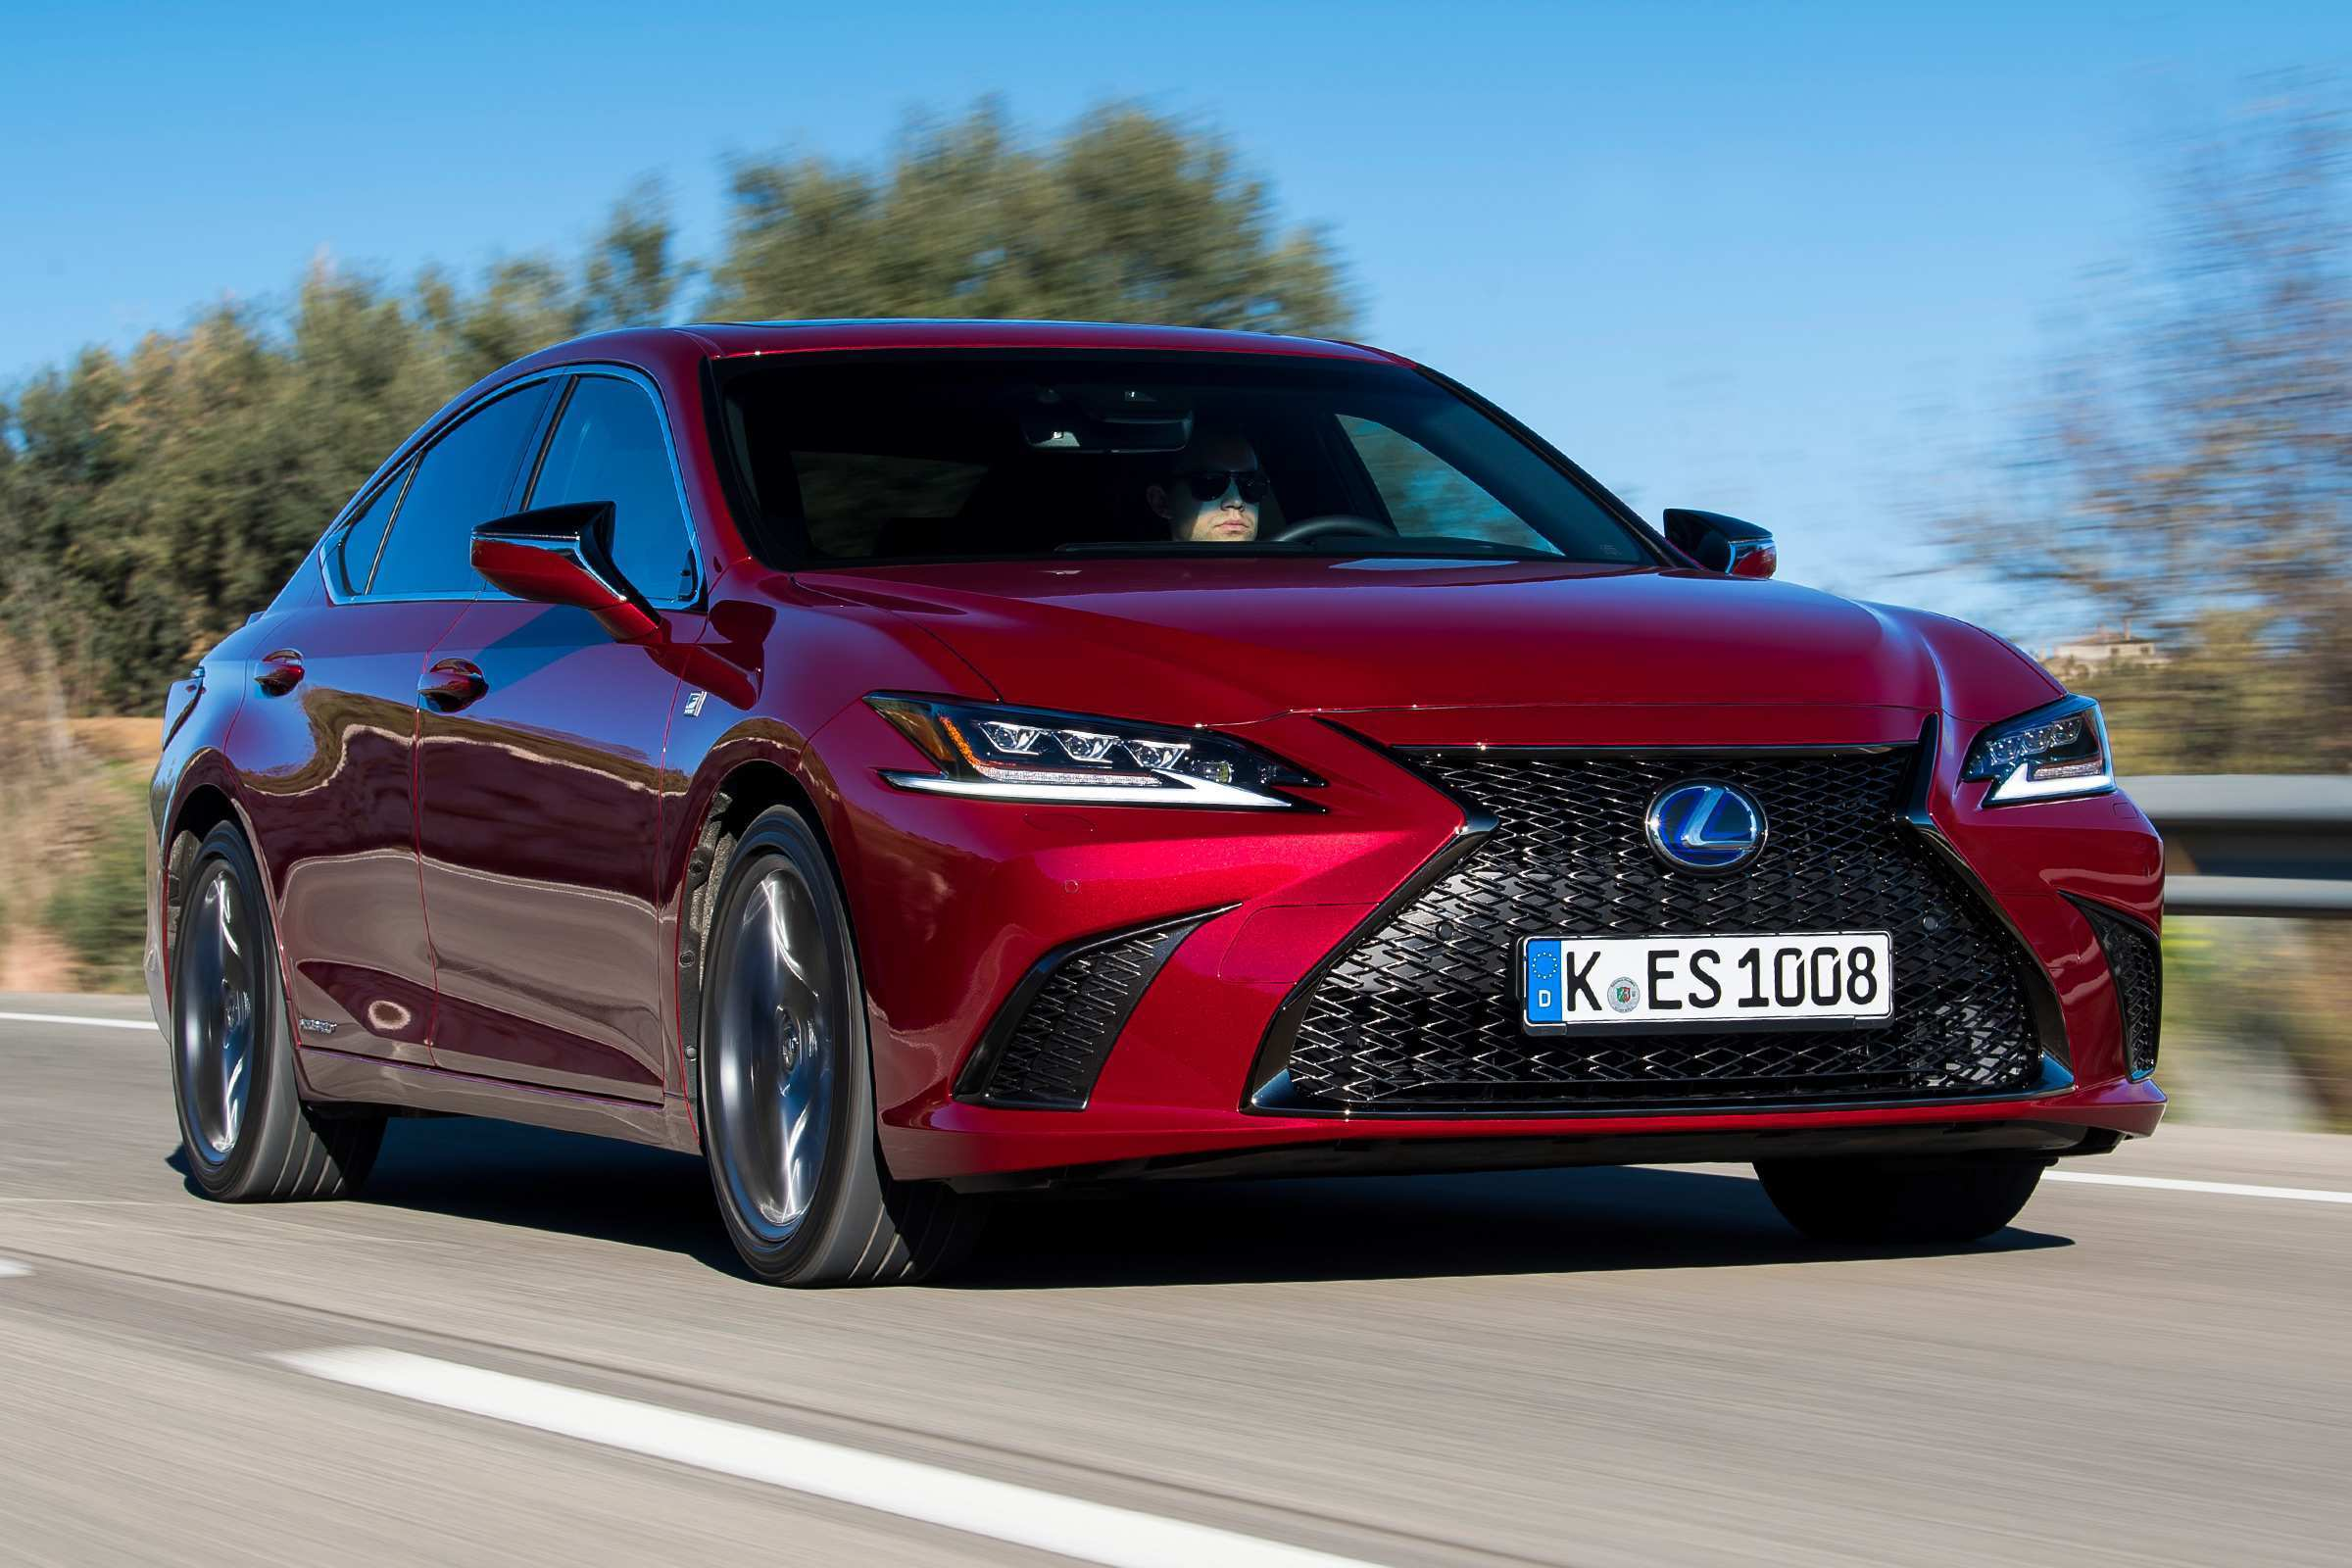 20 Concept of Lexus 2019 Review Pictures by Lexus 2019 Review